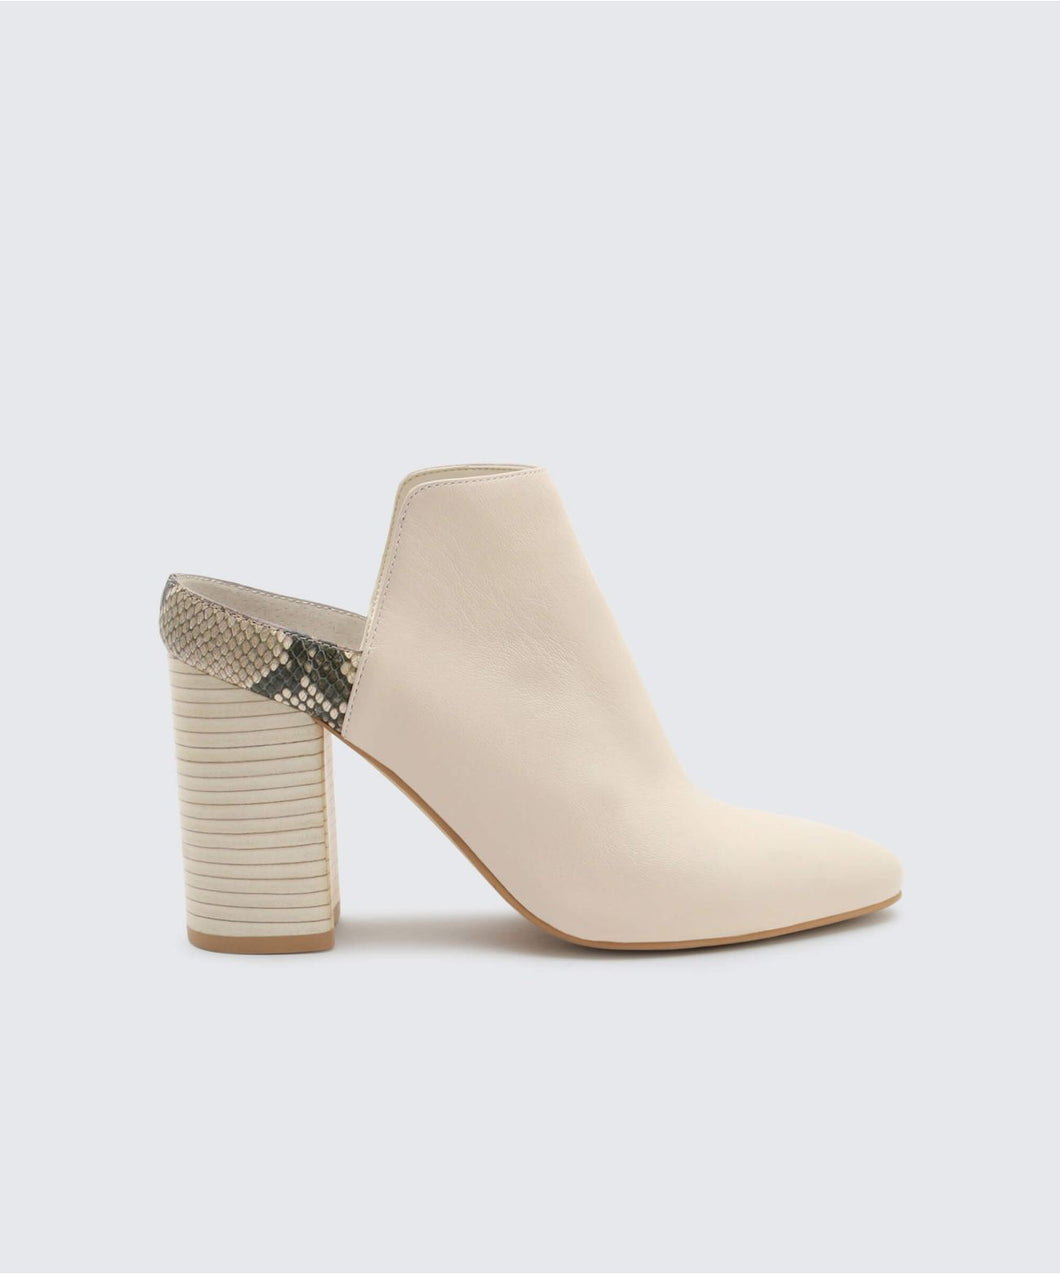 RENLY BOOTIES IVORY -   Dolce Vita